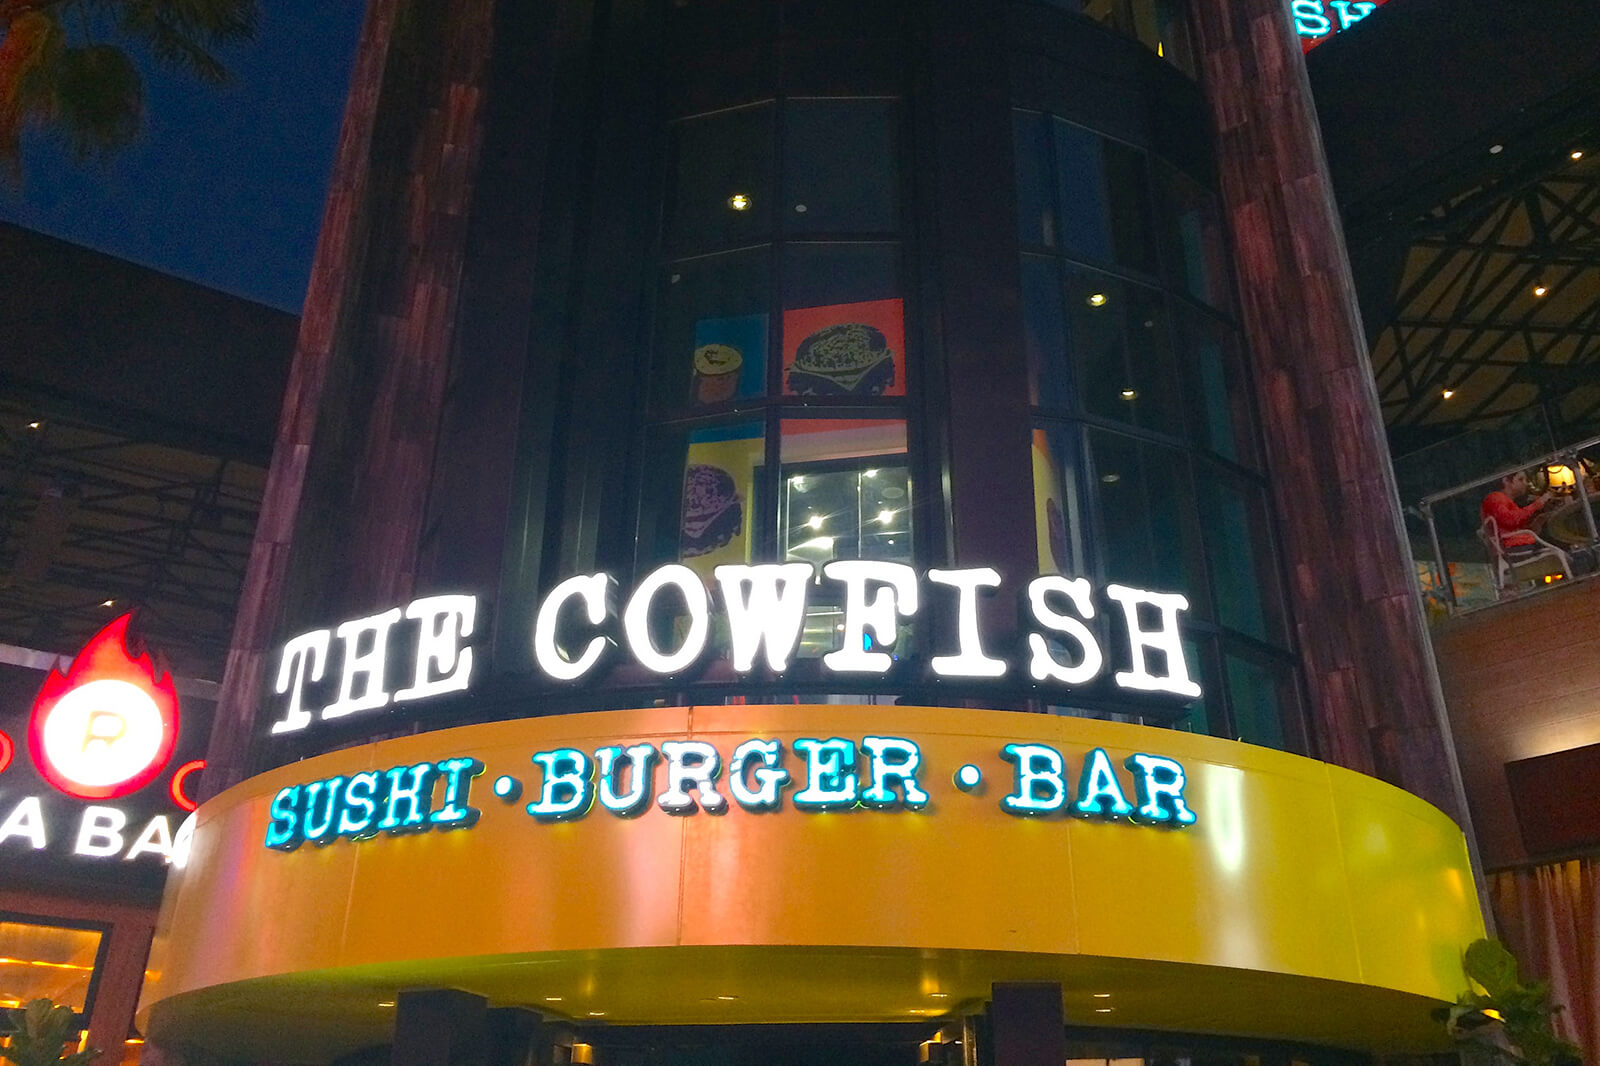 The Cowfish, the first and only burger and sushi bar in the world, is one of the offbeat Orlando restaurants keeping the city unique